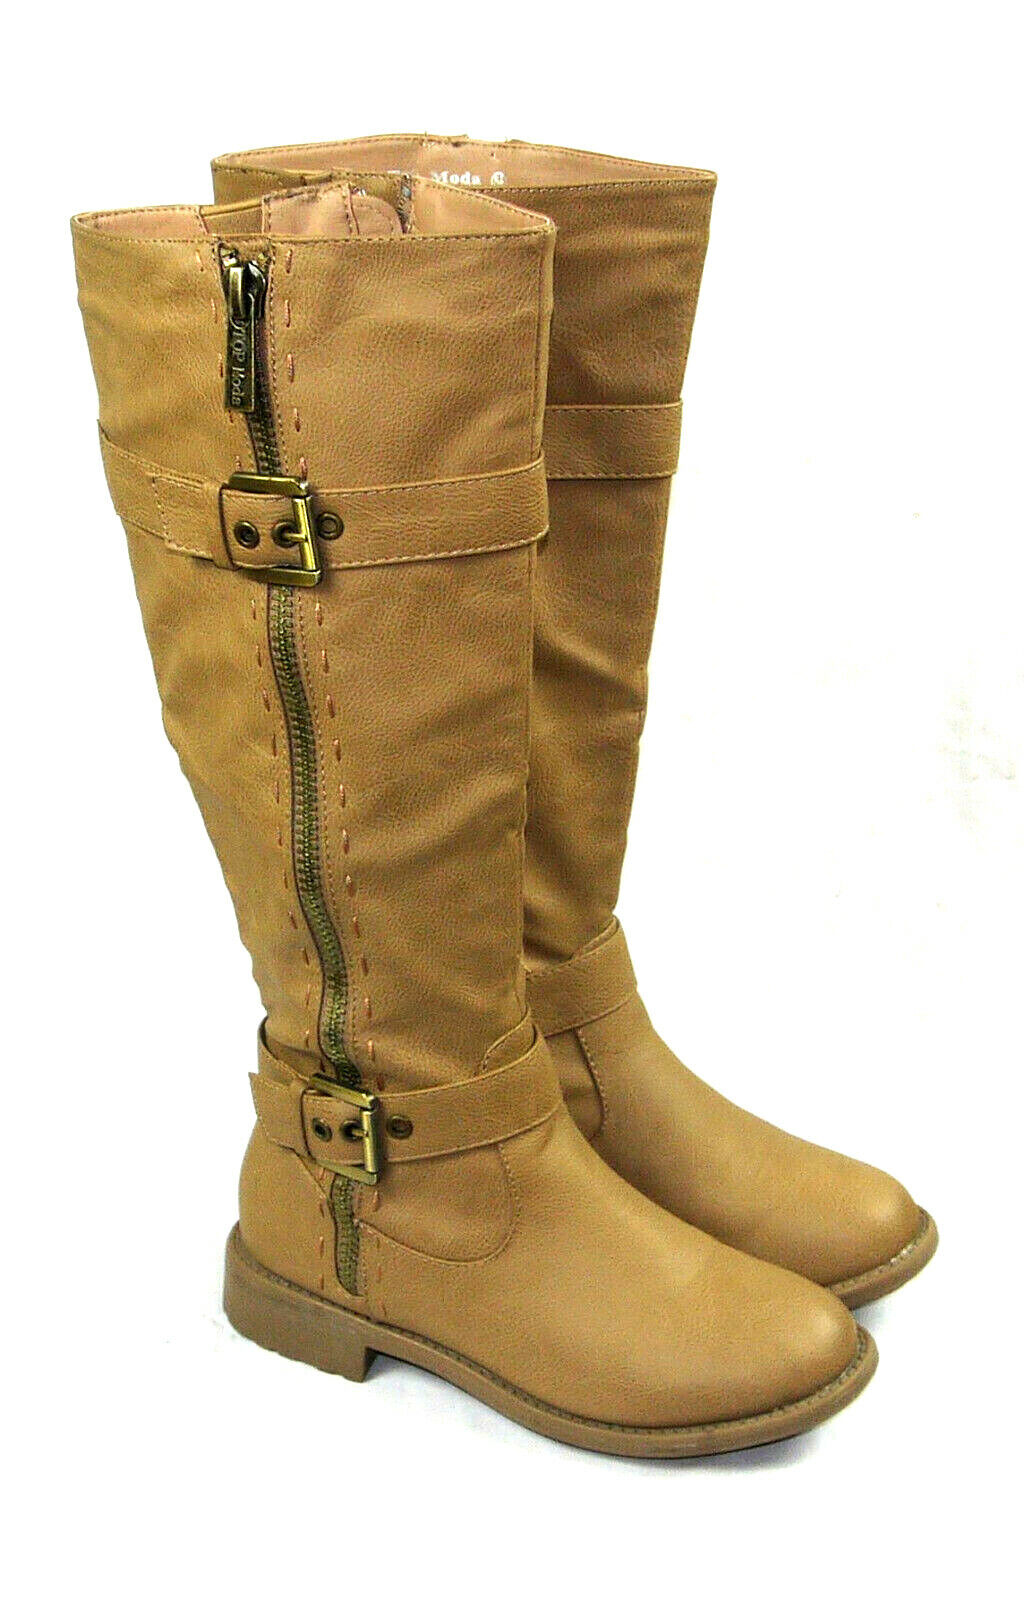 Top Moda Women's Taupe Knee High Riding Boots Size 5.5